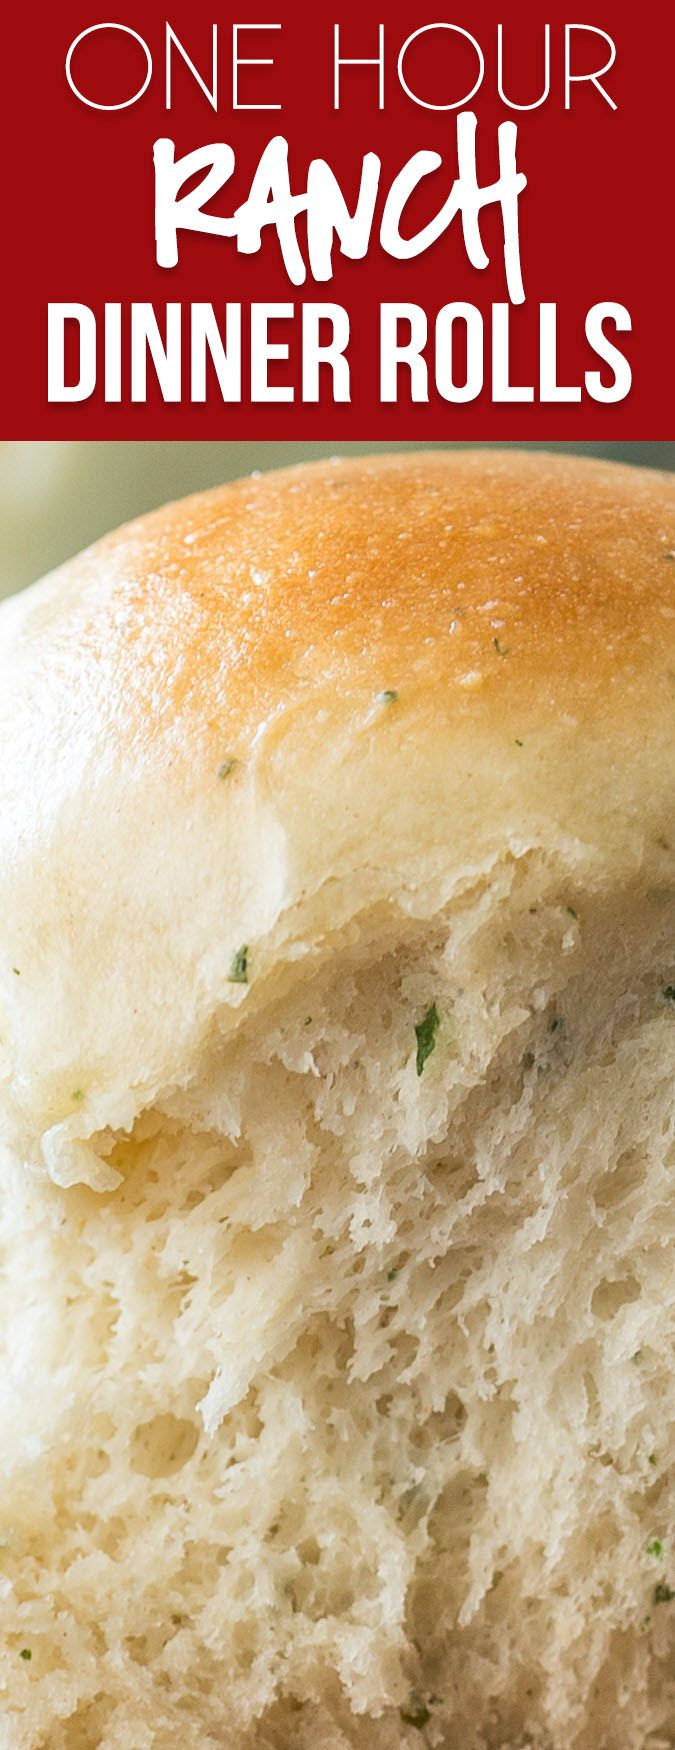 These One Hour Ranch Dinner Rolls are filled with a subtle and delicious ranch flavor and hot and ready in just 1 hour! via @iwashyoudry #RanchOut #AD